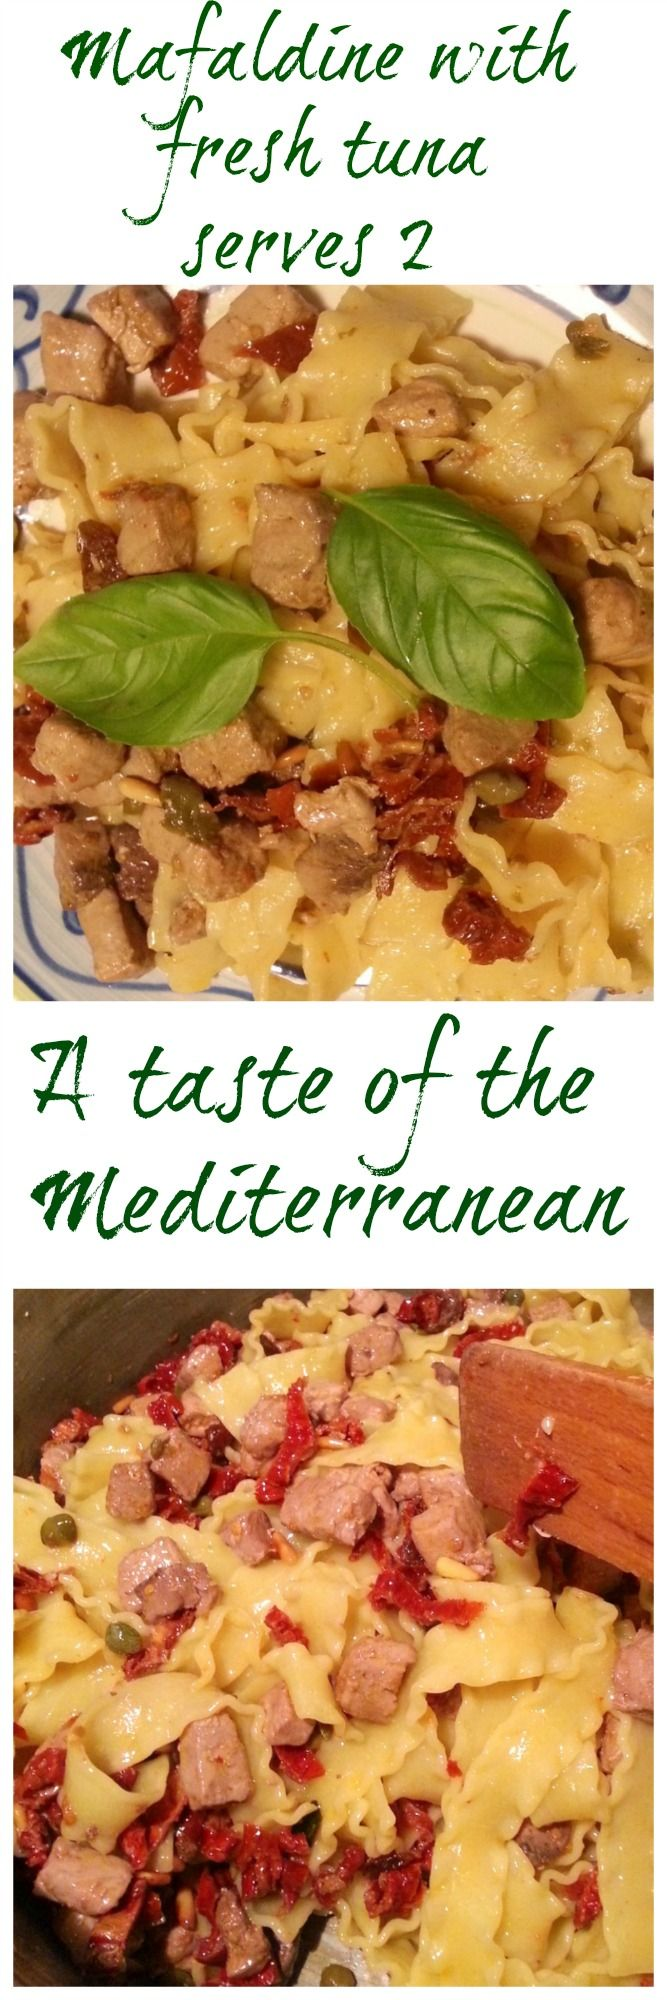 This recipe for mafaldine pasta (also called mafalda or reginette) with fresh tuna requires only a few ingredients but the taste is summer in the Mediterranean! Check out the recipe on the blog!